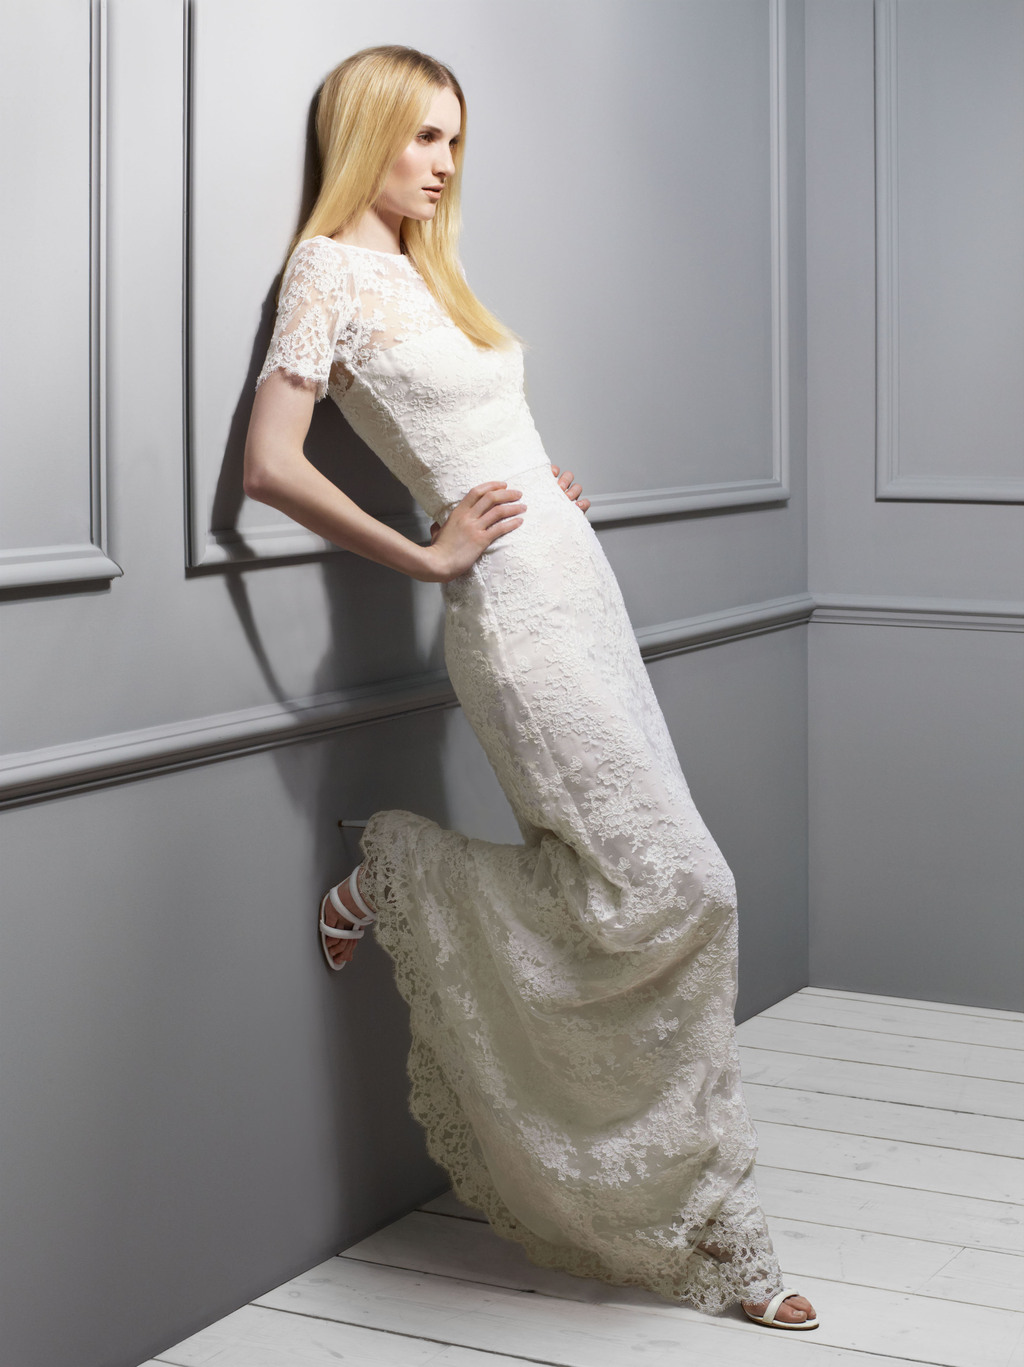 Issa-lace-wedding-dress-2013-exclusive-bridal-designer-collection-from-net-a-porter.full